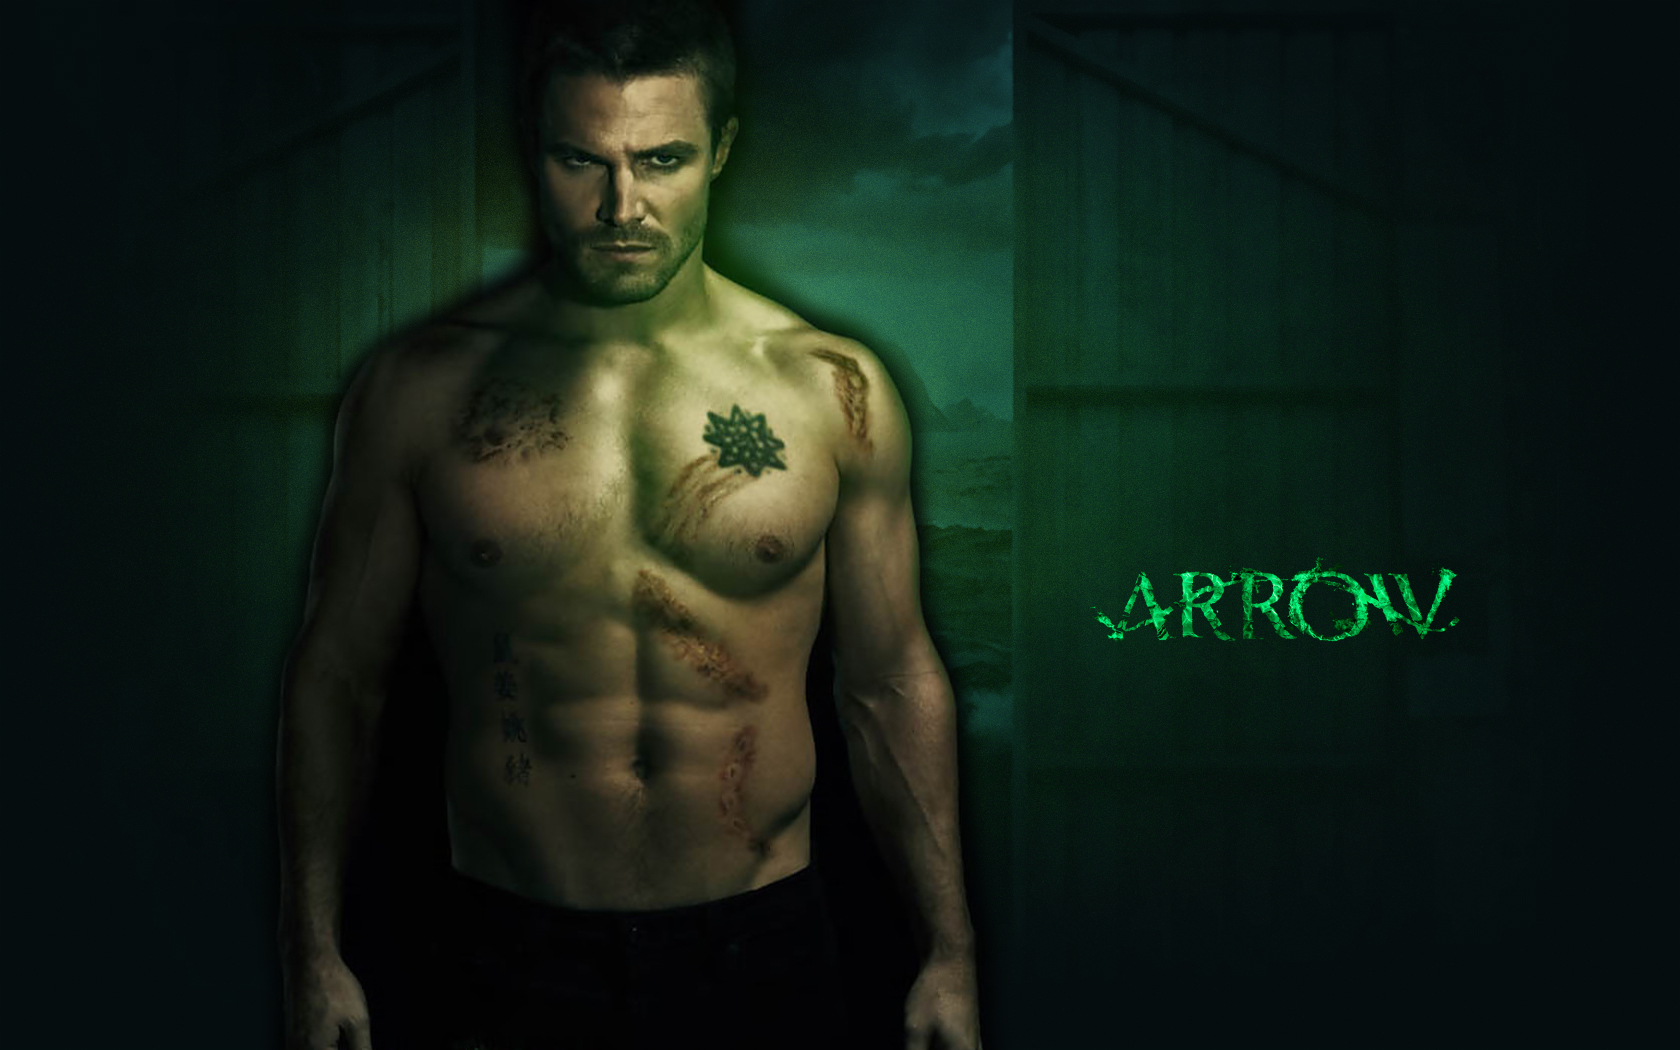 Arrow season 2 new wallpapers Movie Wallpapers 1680x1050